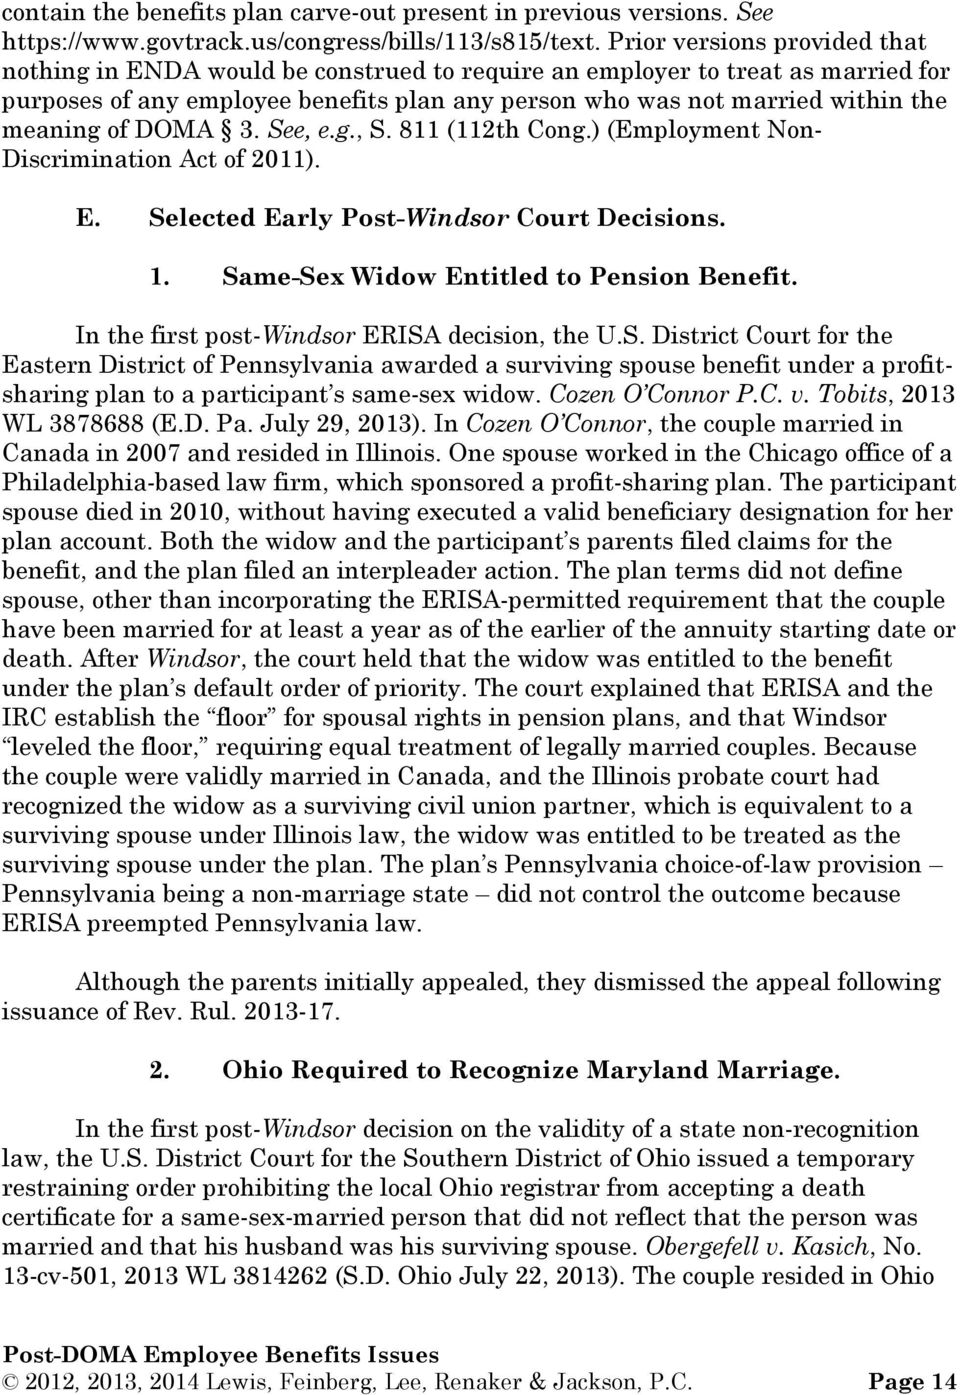 of DOMA 3. See, e.g., S. 811 (112th Cong.) (Employment Non- Discrimination Act of 2011). E. Selected Early Post-Windsor Court Decisions. 1. Same-Sex Widow Entitled to Pension Benefit.